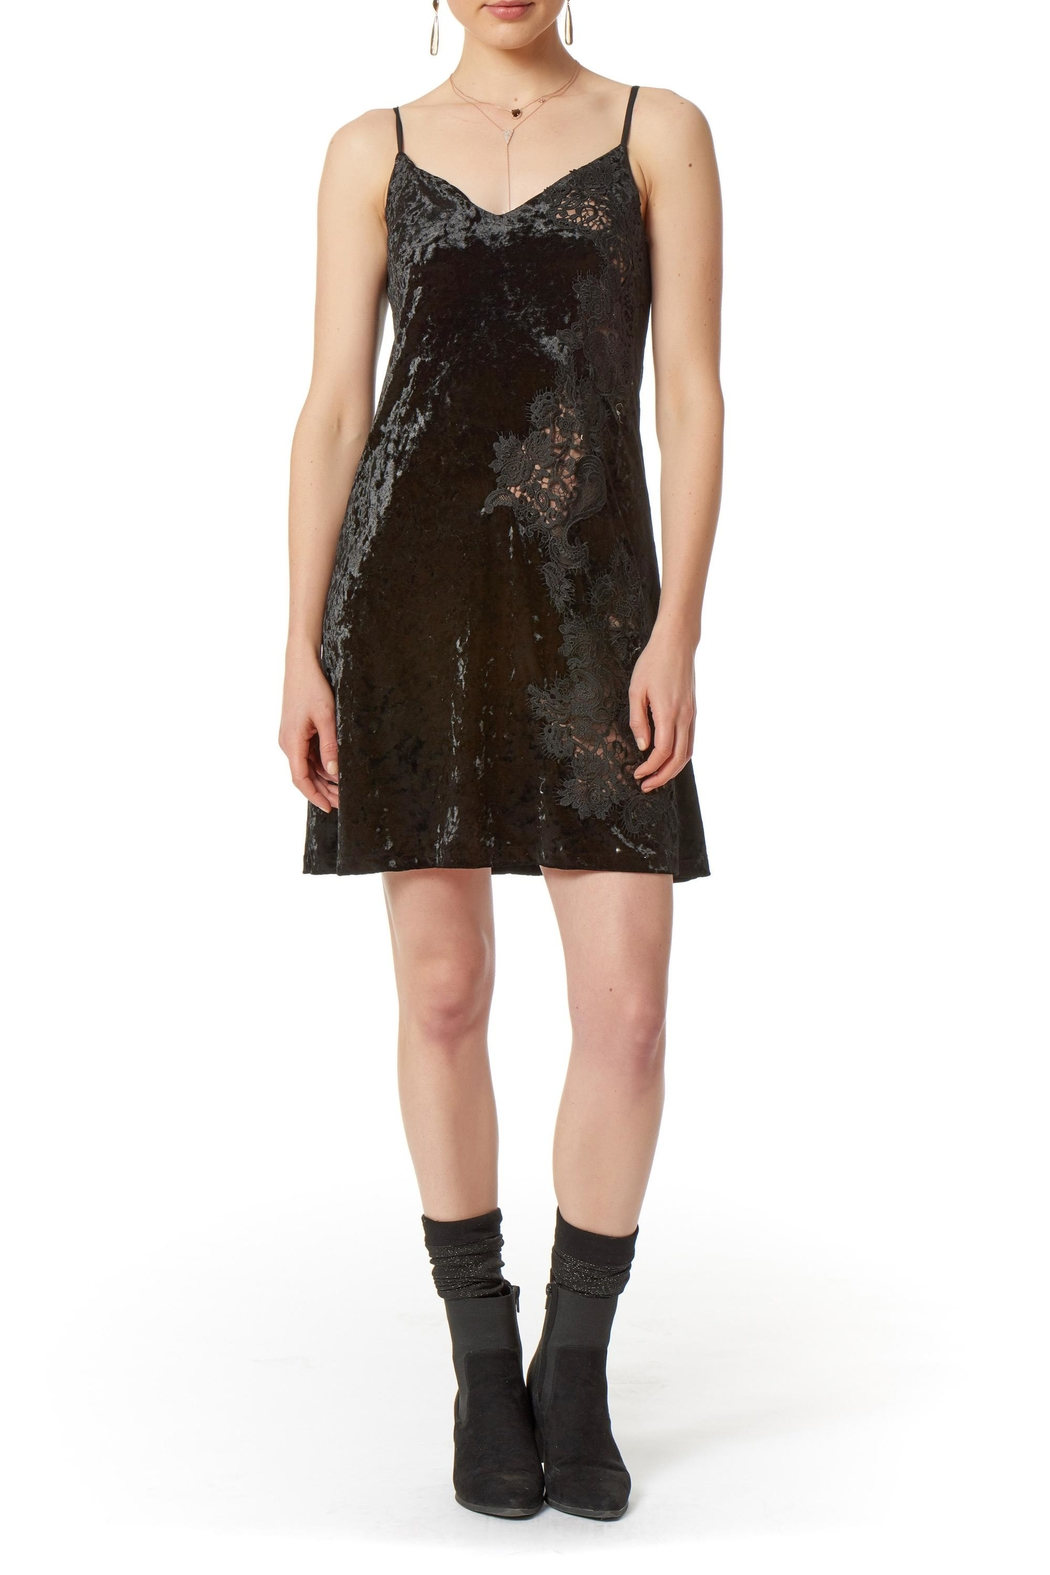 Bailey 44 Casting Call Velvet Dress - Front Cropped Image